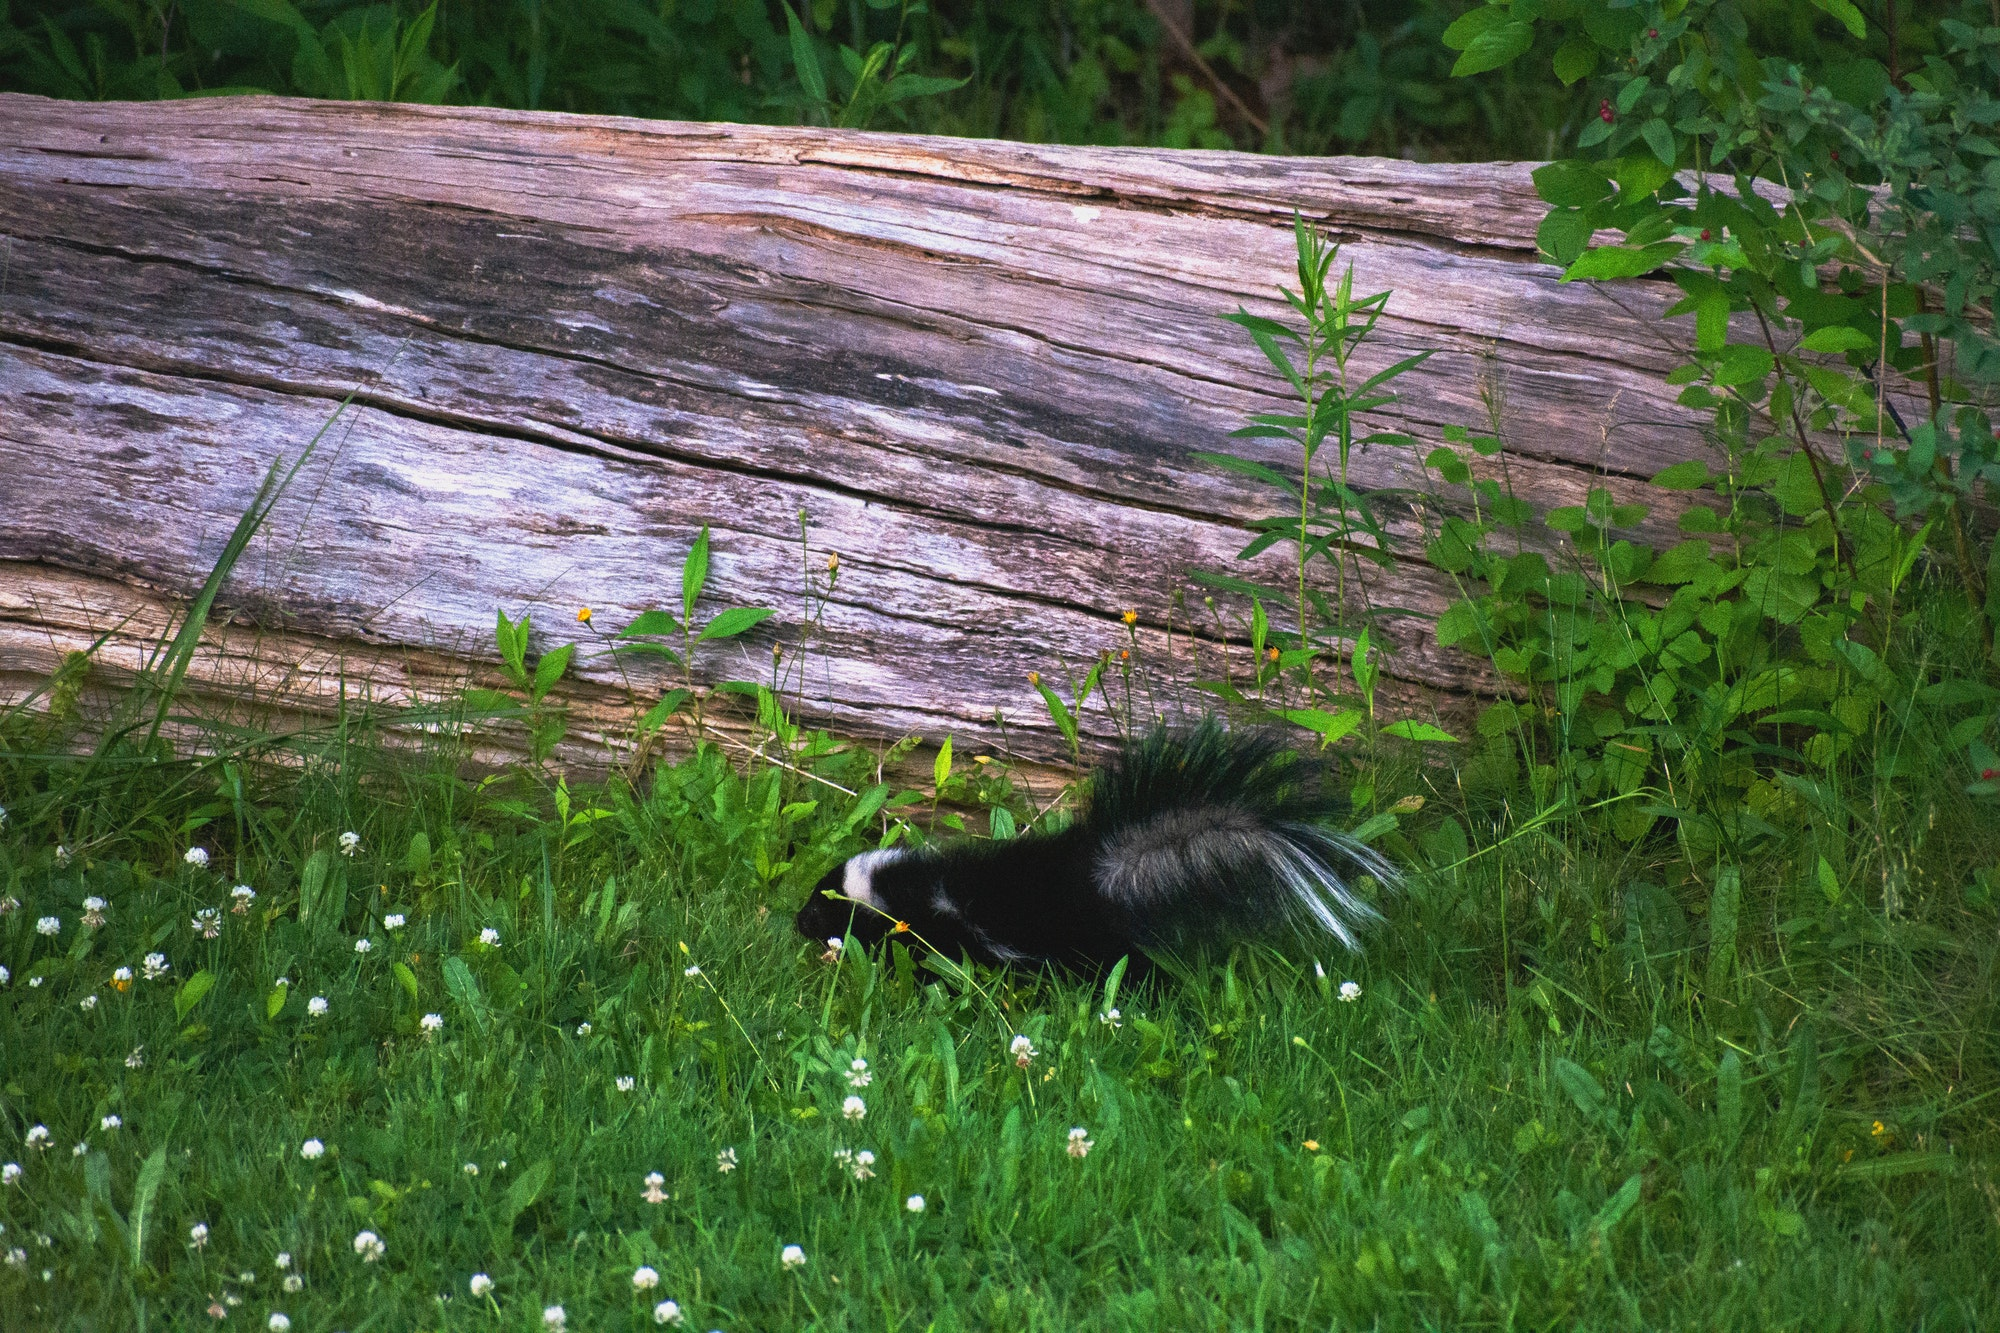 A baby skunk in the green grasses of clover venturing near an old fallen tree trunk and on a mission